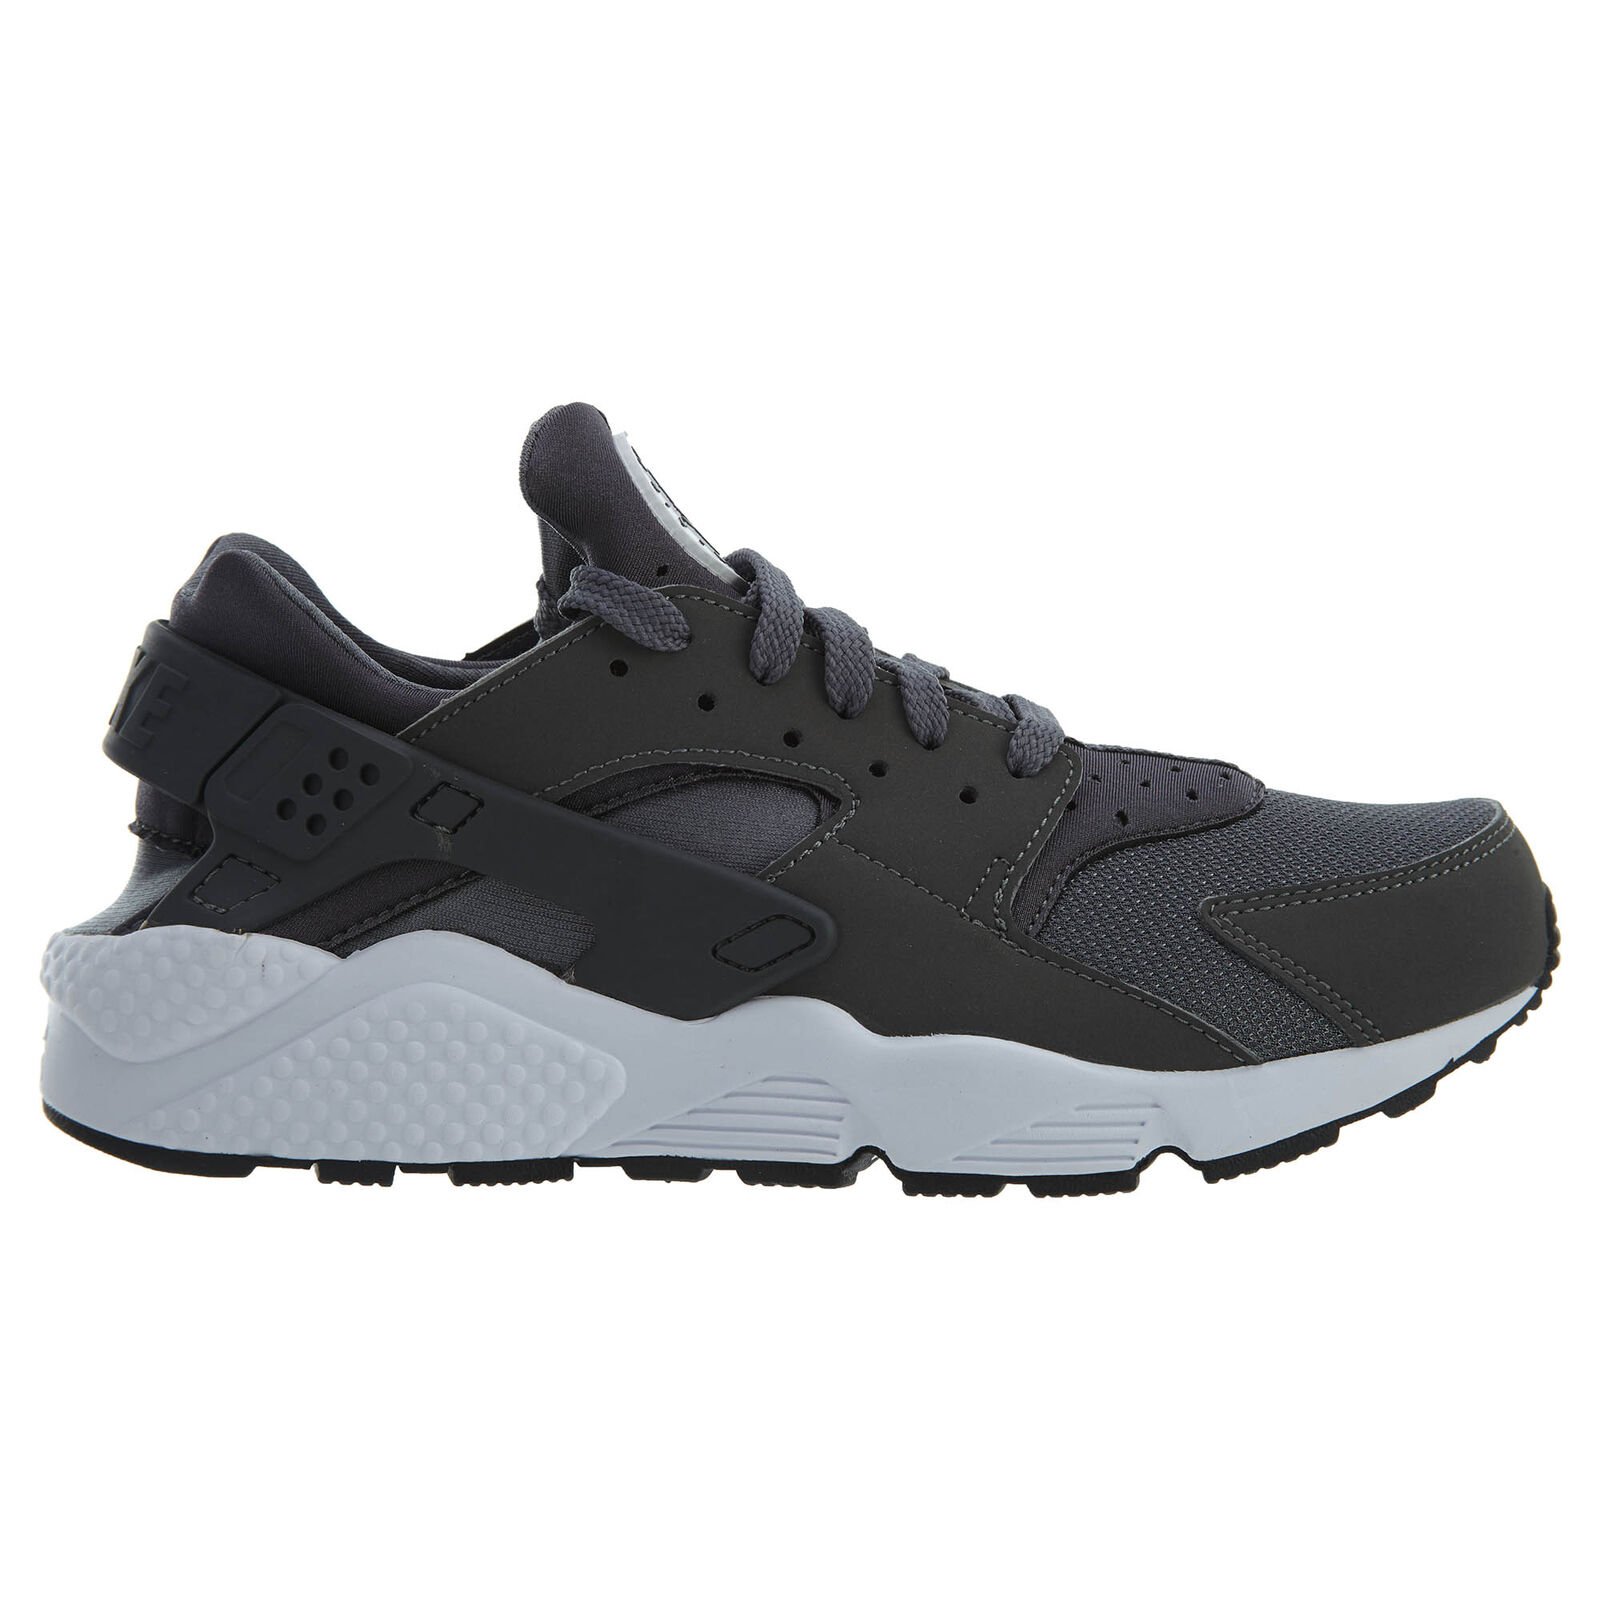 Nike Air Huarache Mens 318429-037 Dark Grey Athletic Running shoes Size 11